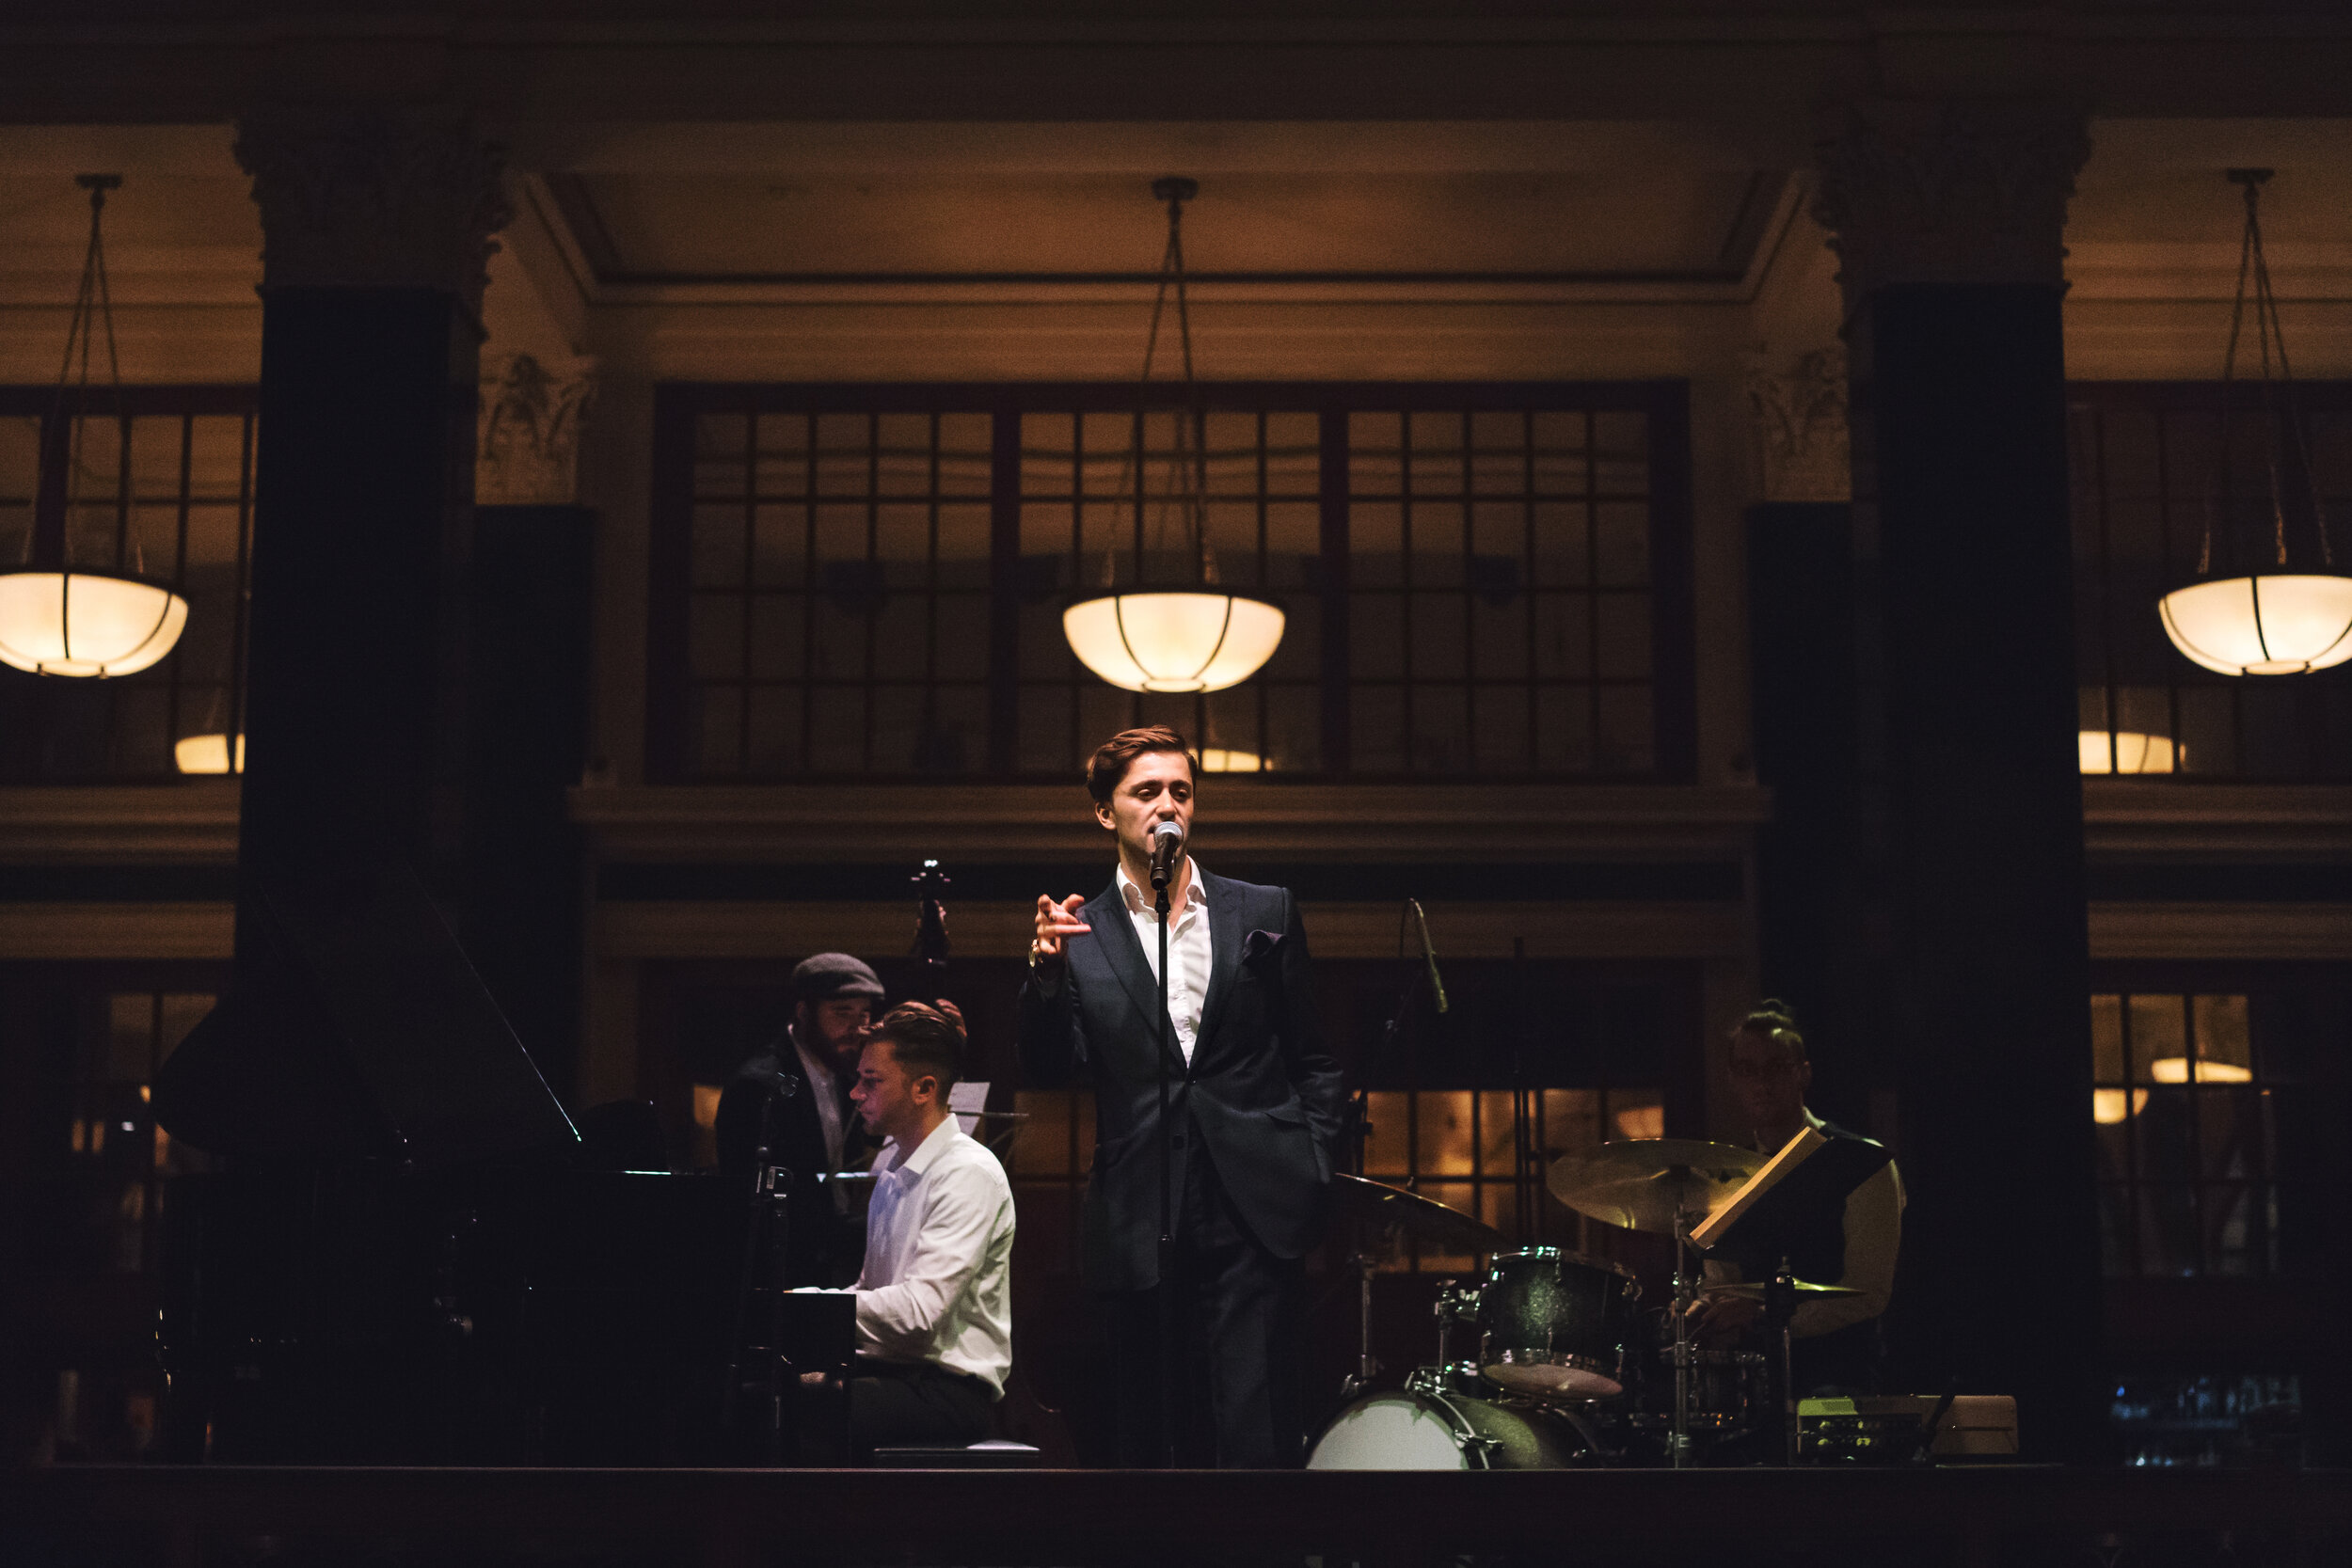 Leon Garner Jazz Trio perform hits from the Great American Songbook and timeless classics from the world of MGM musicals